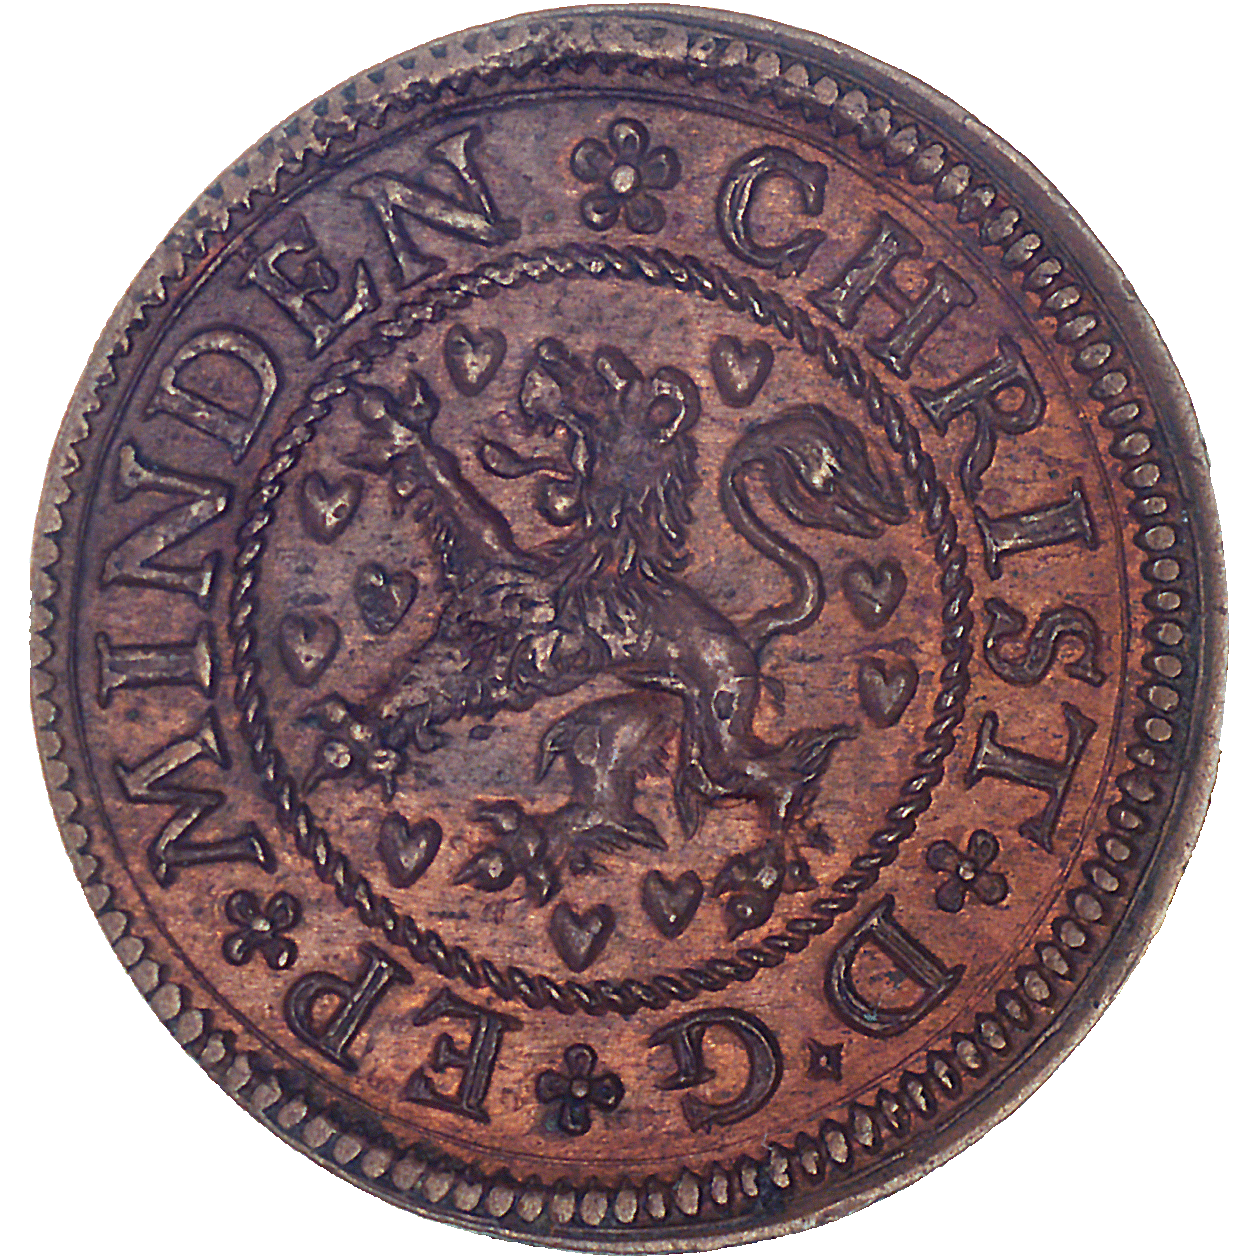 Holy Roman Empire, County of Lüneburg, Bishop Christian of Braunschweig-Lüneburg, Kipper-Dreigutepfennig (obverse)